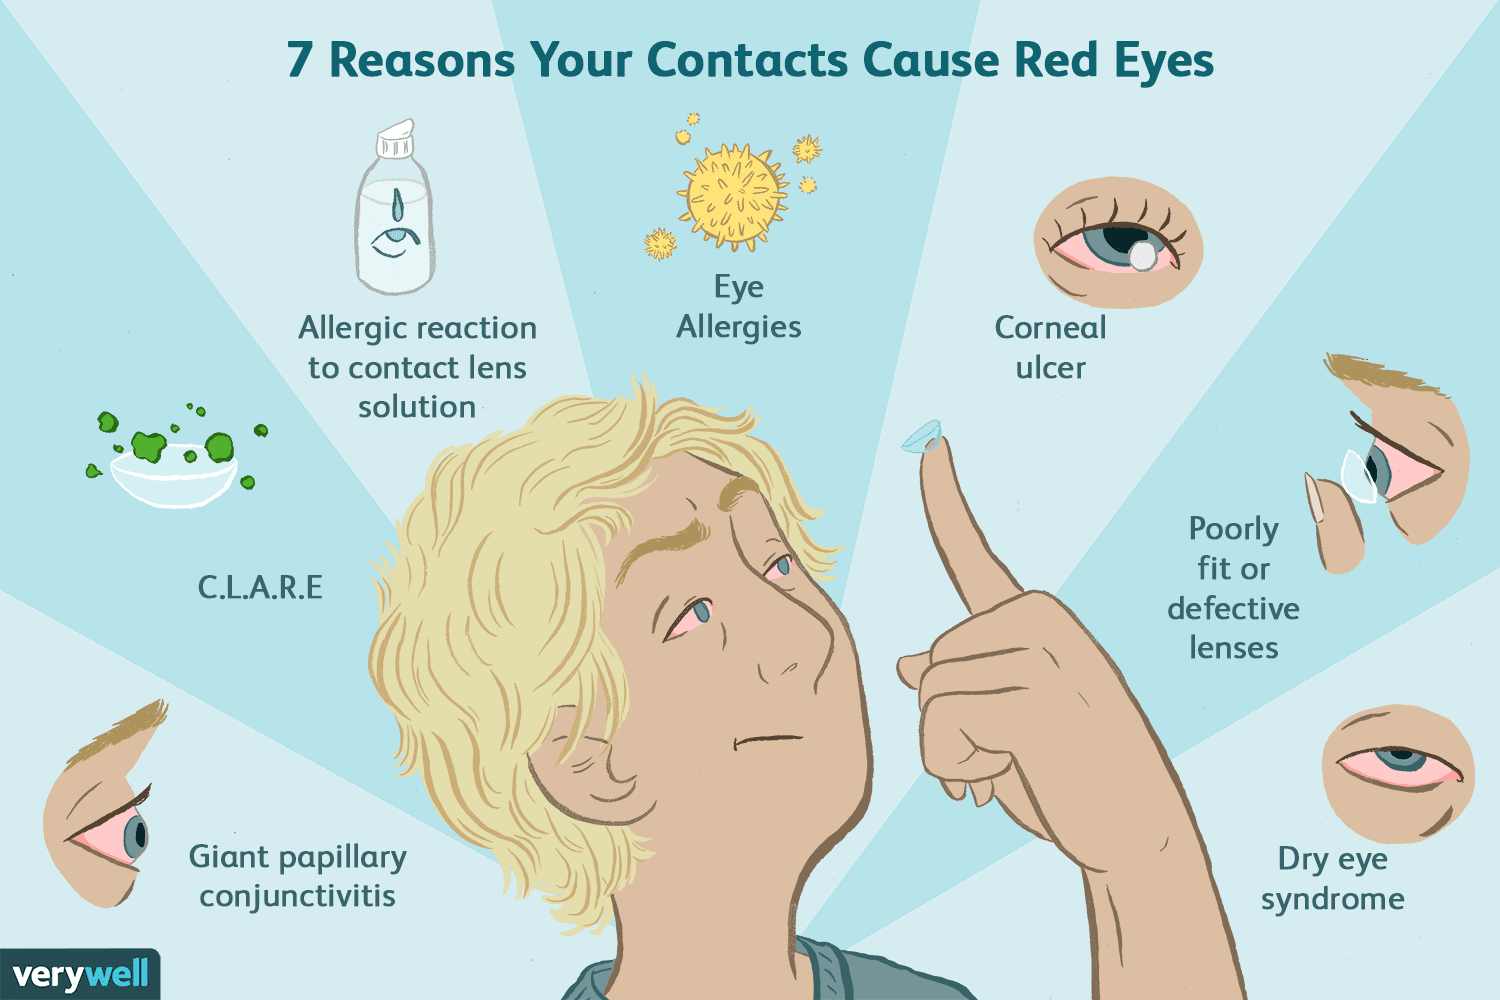 Causes Of Red Eyes In Contact Wearers - Allergic-reaction-to-makeup-remover-on-eye